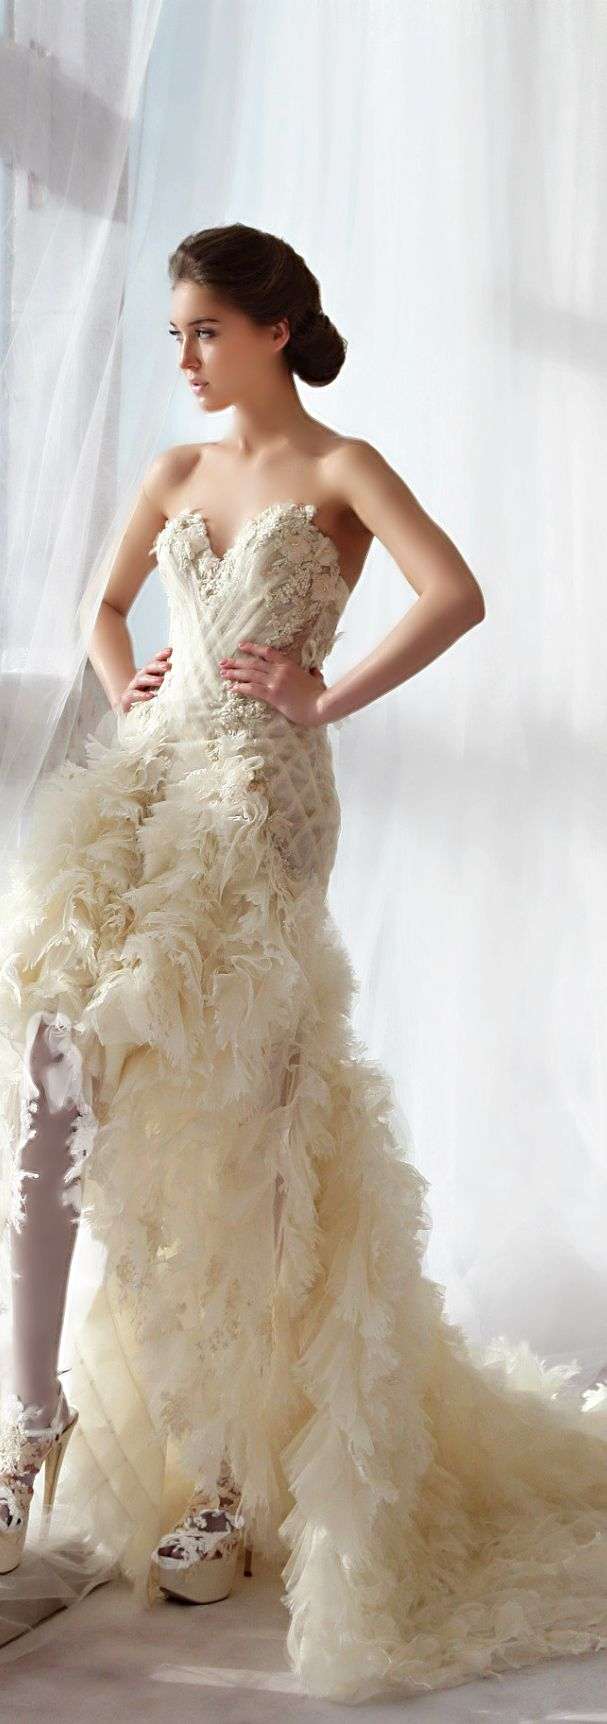 Wedding dress ziad nakad blanche pinterest for Ziad nakad wedding dresses